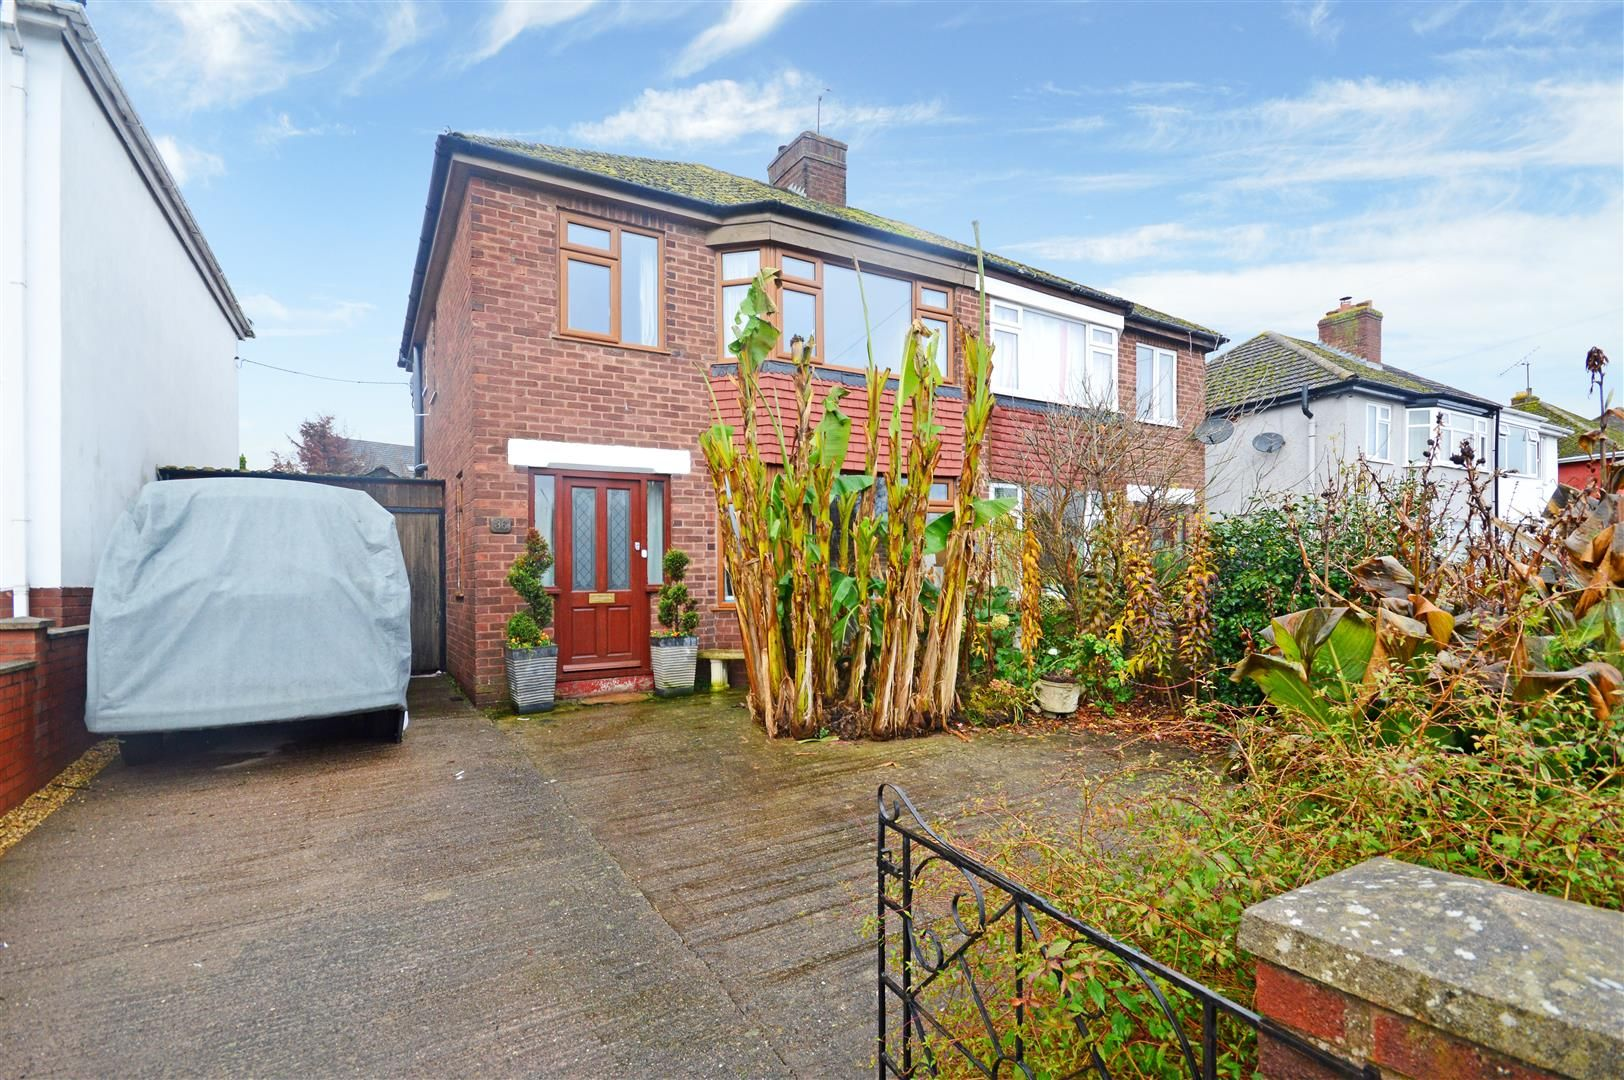 3 bed semi-detached for sale in Hereford - Property Image 1